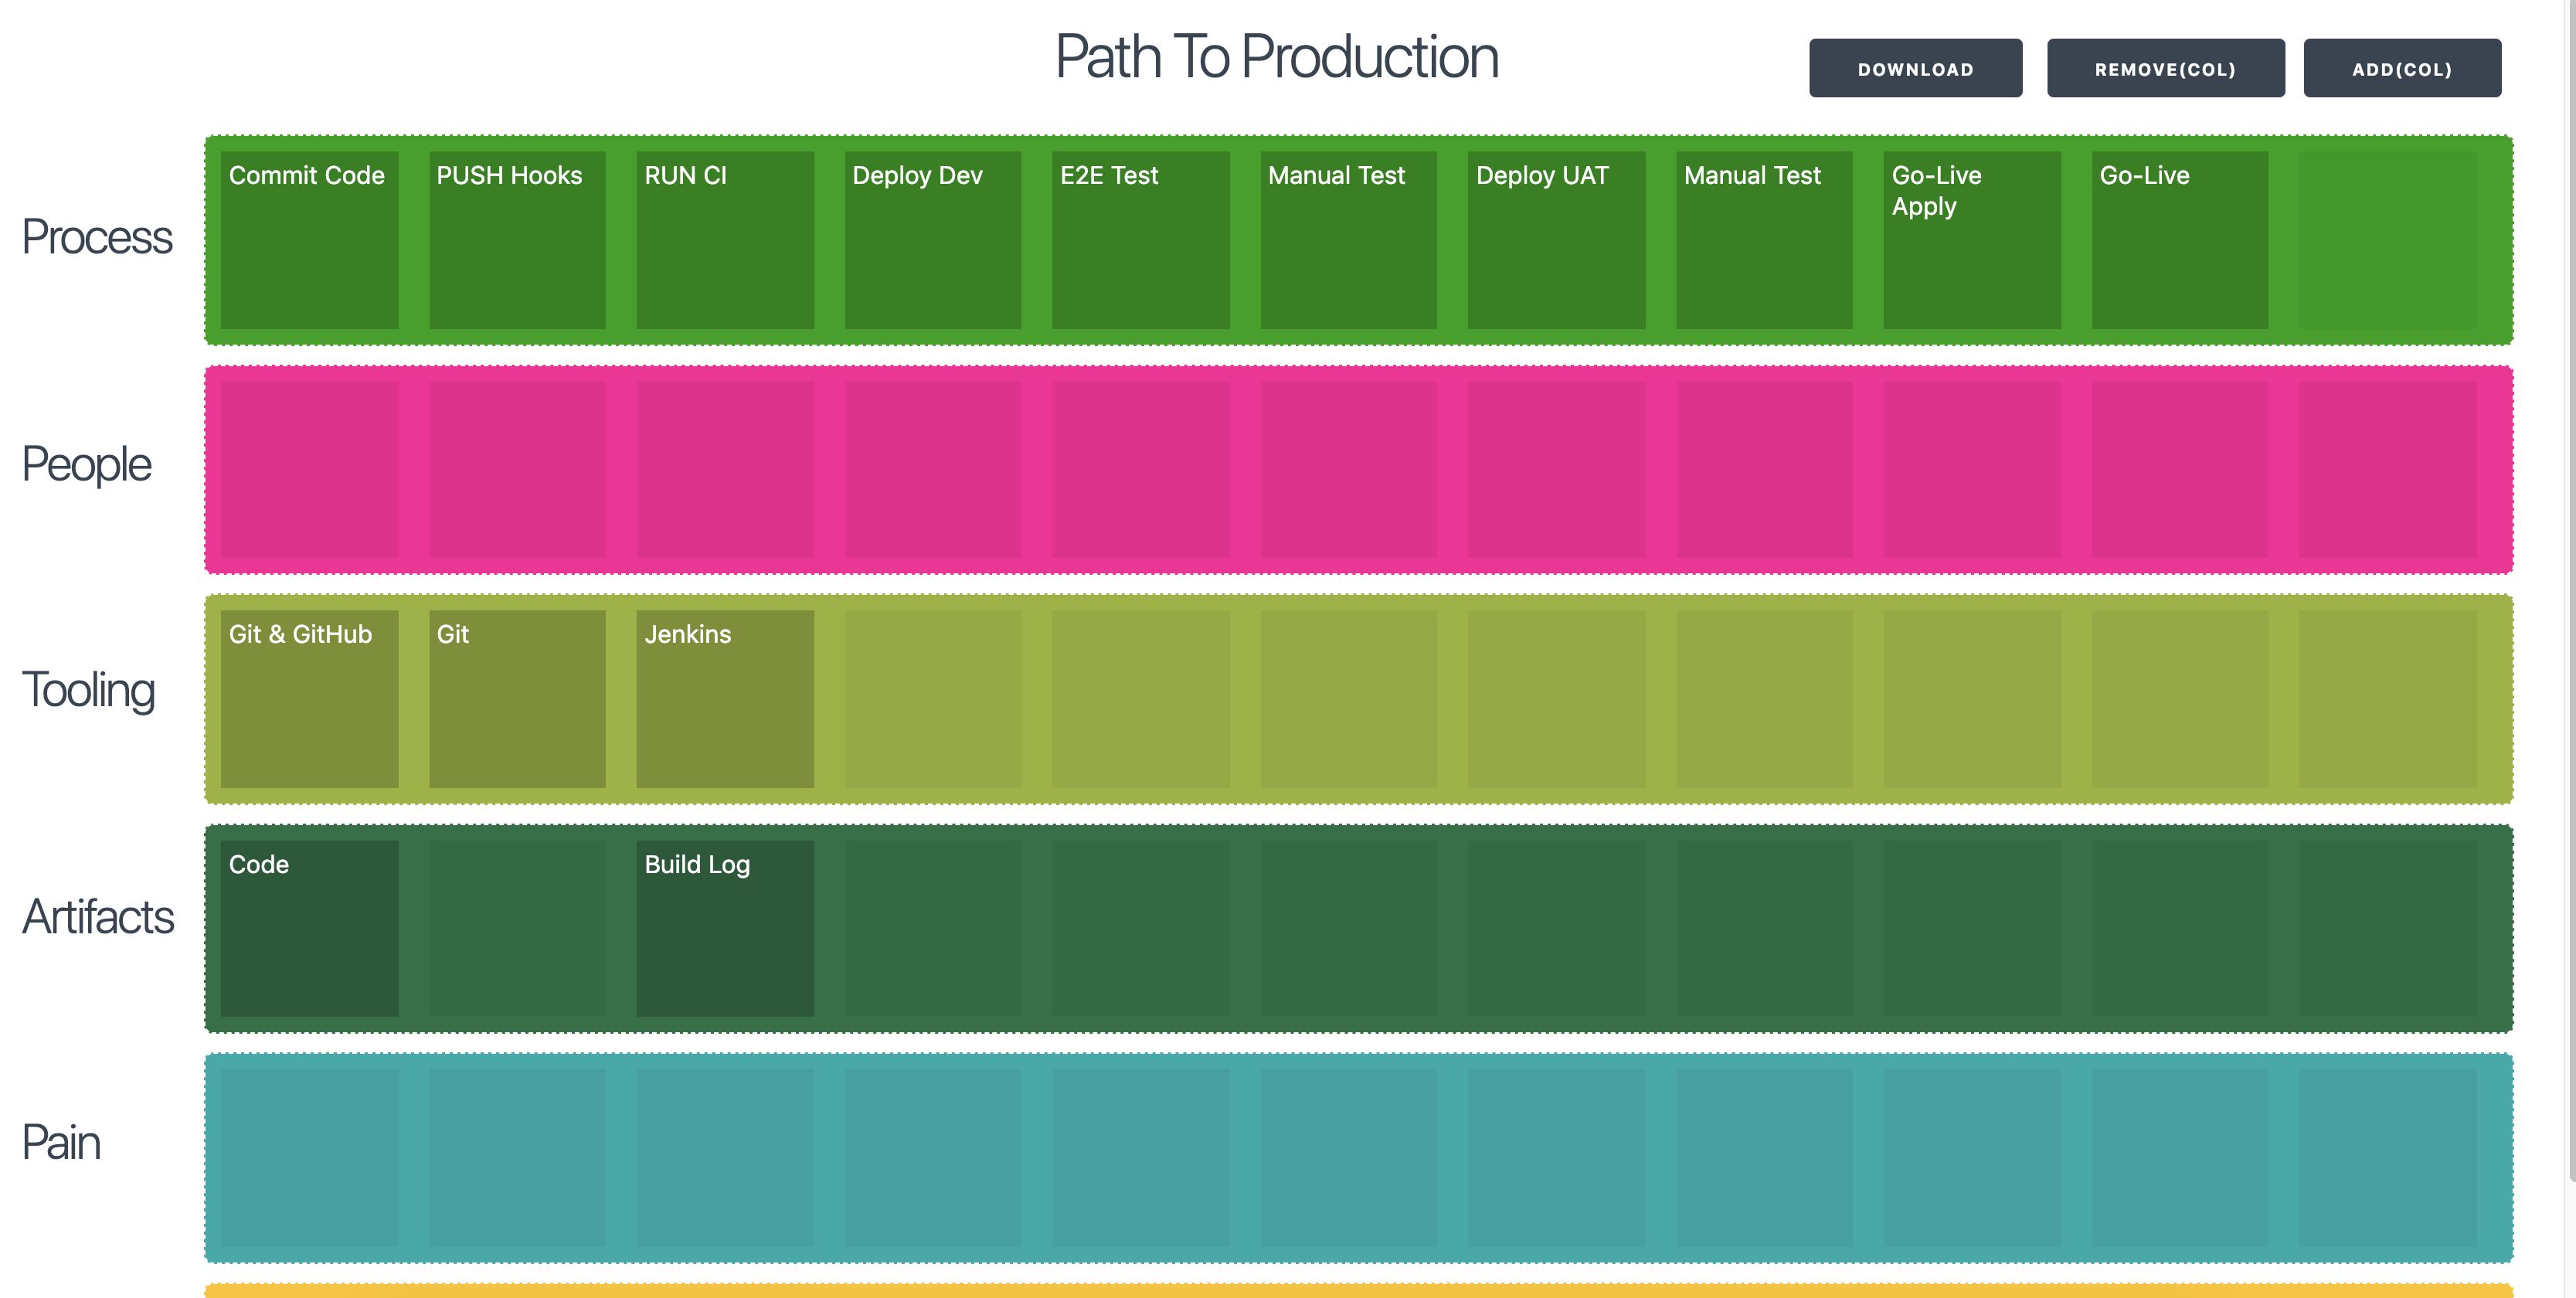 Path to Production